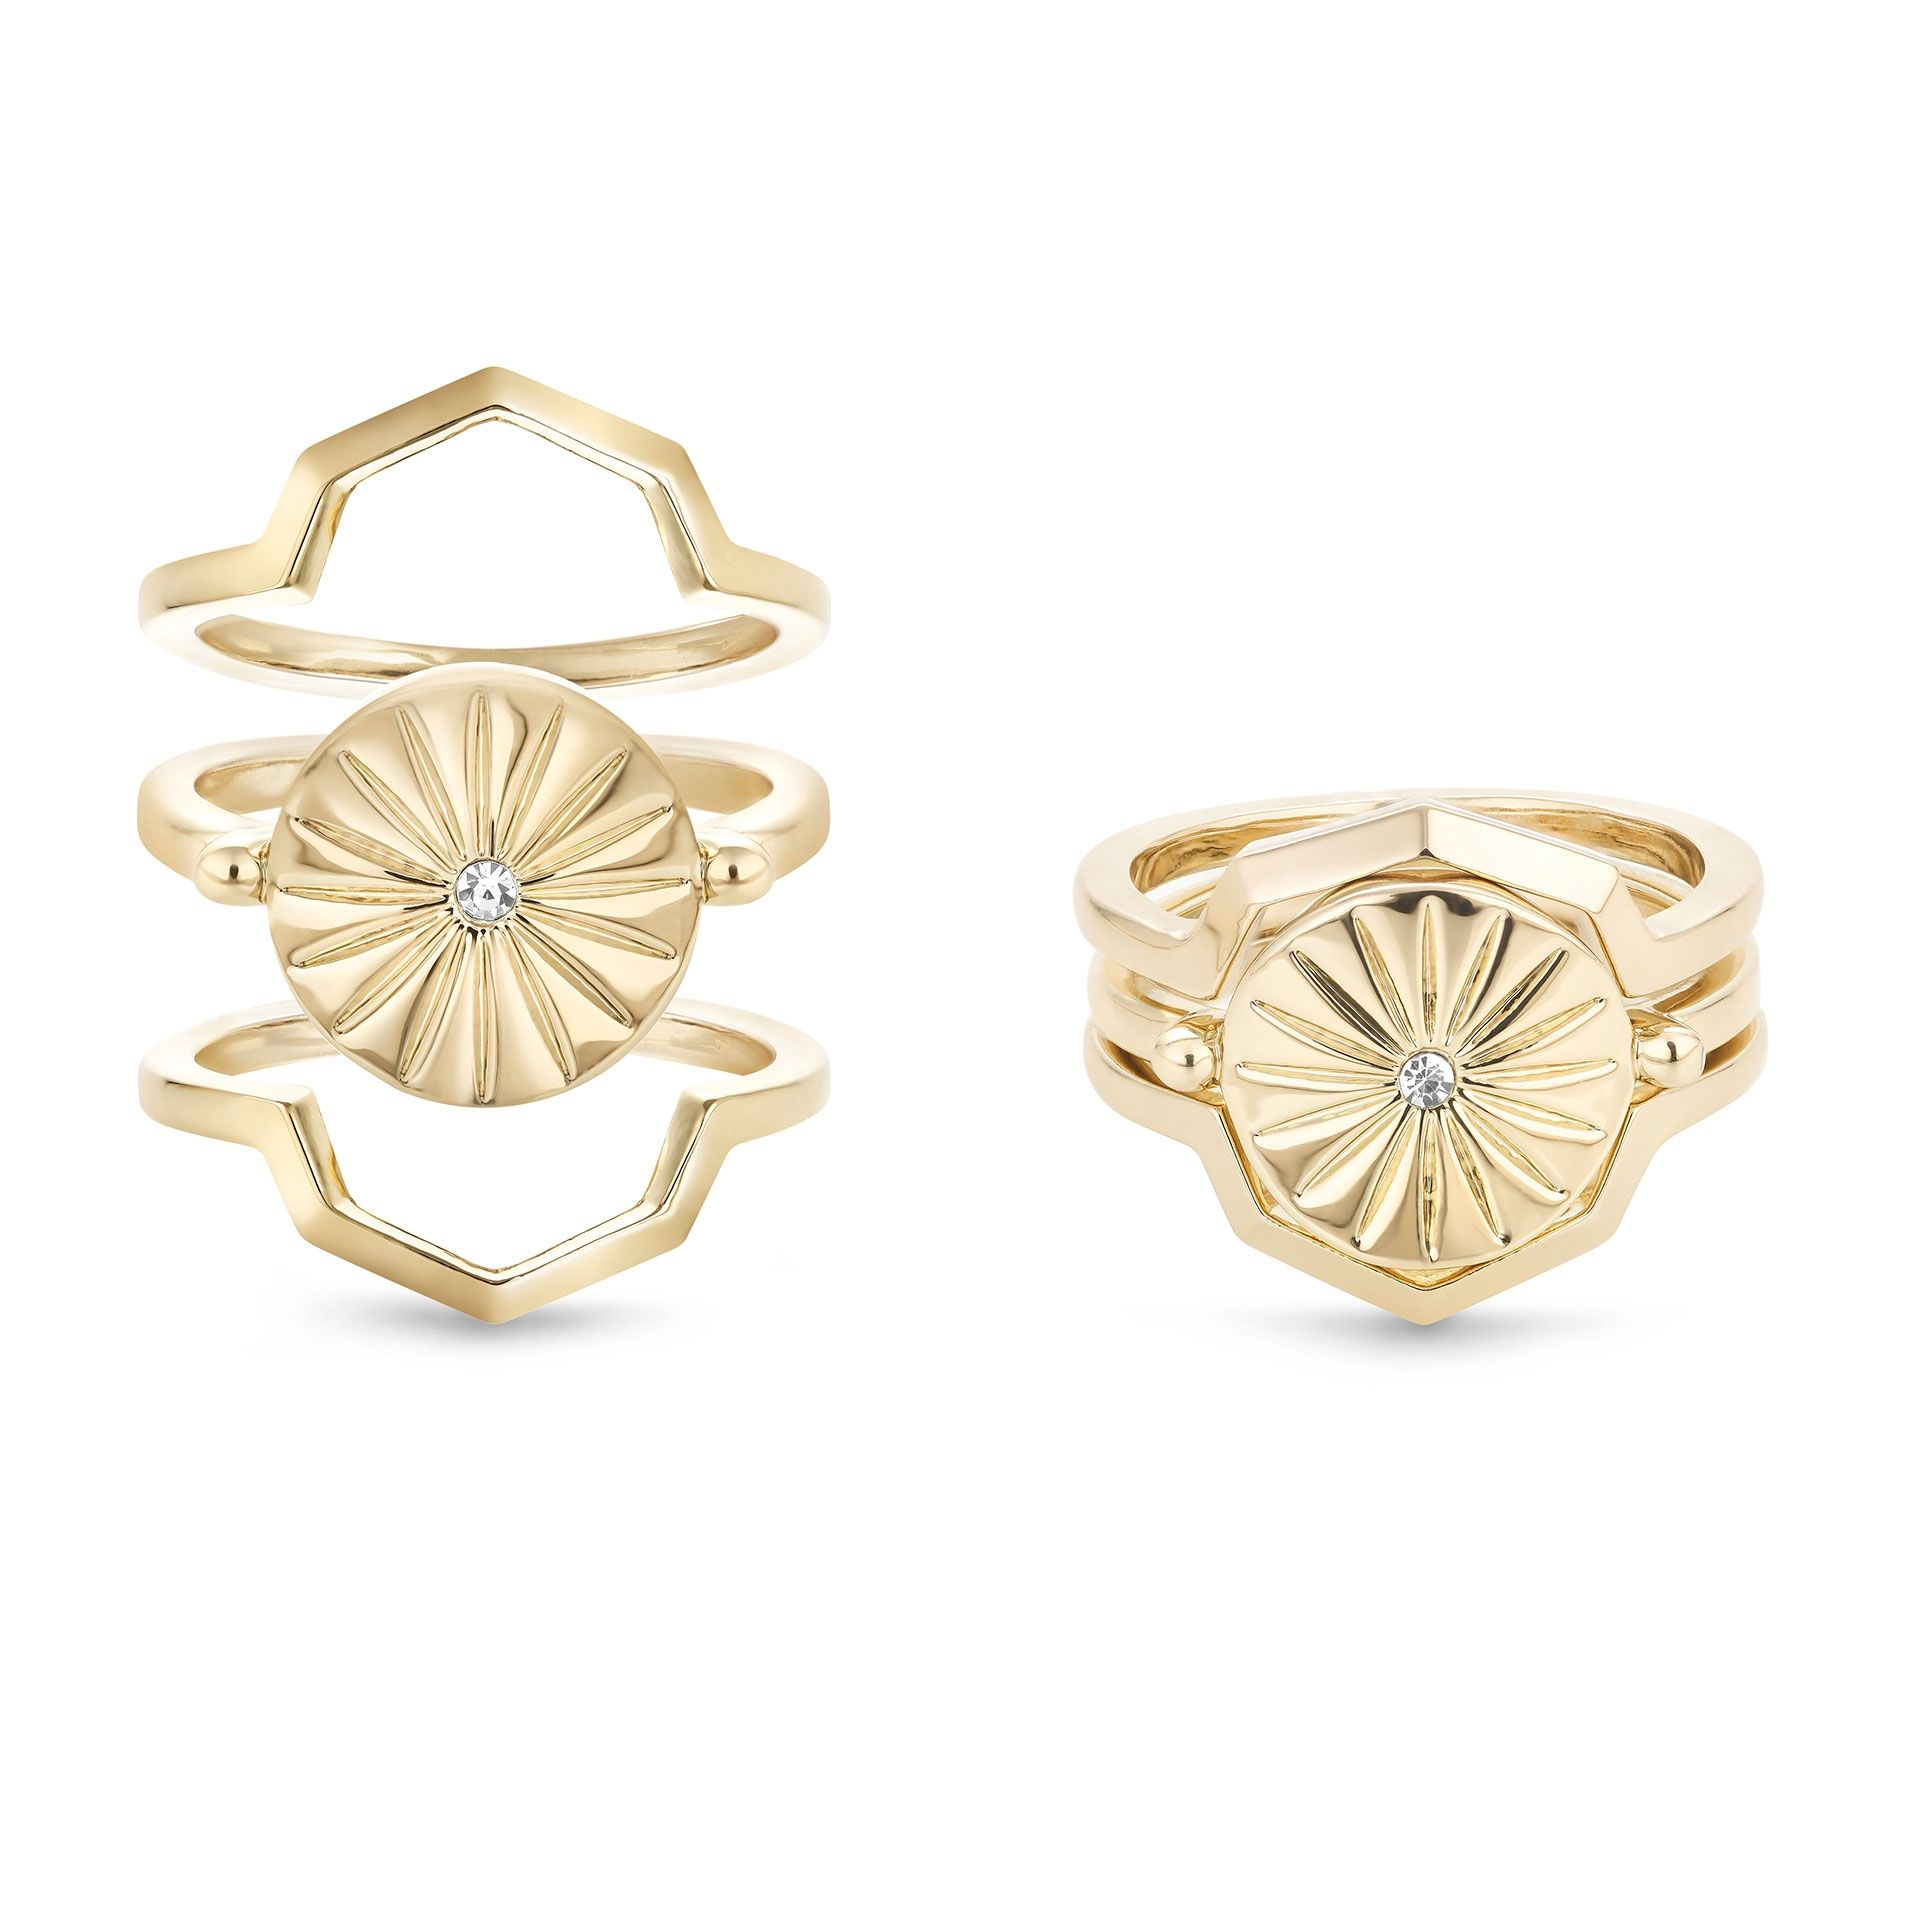 Buckley London Bailey Rae Stacker Rings